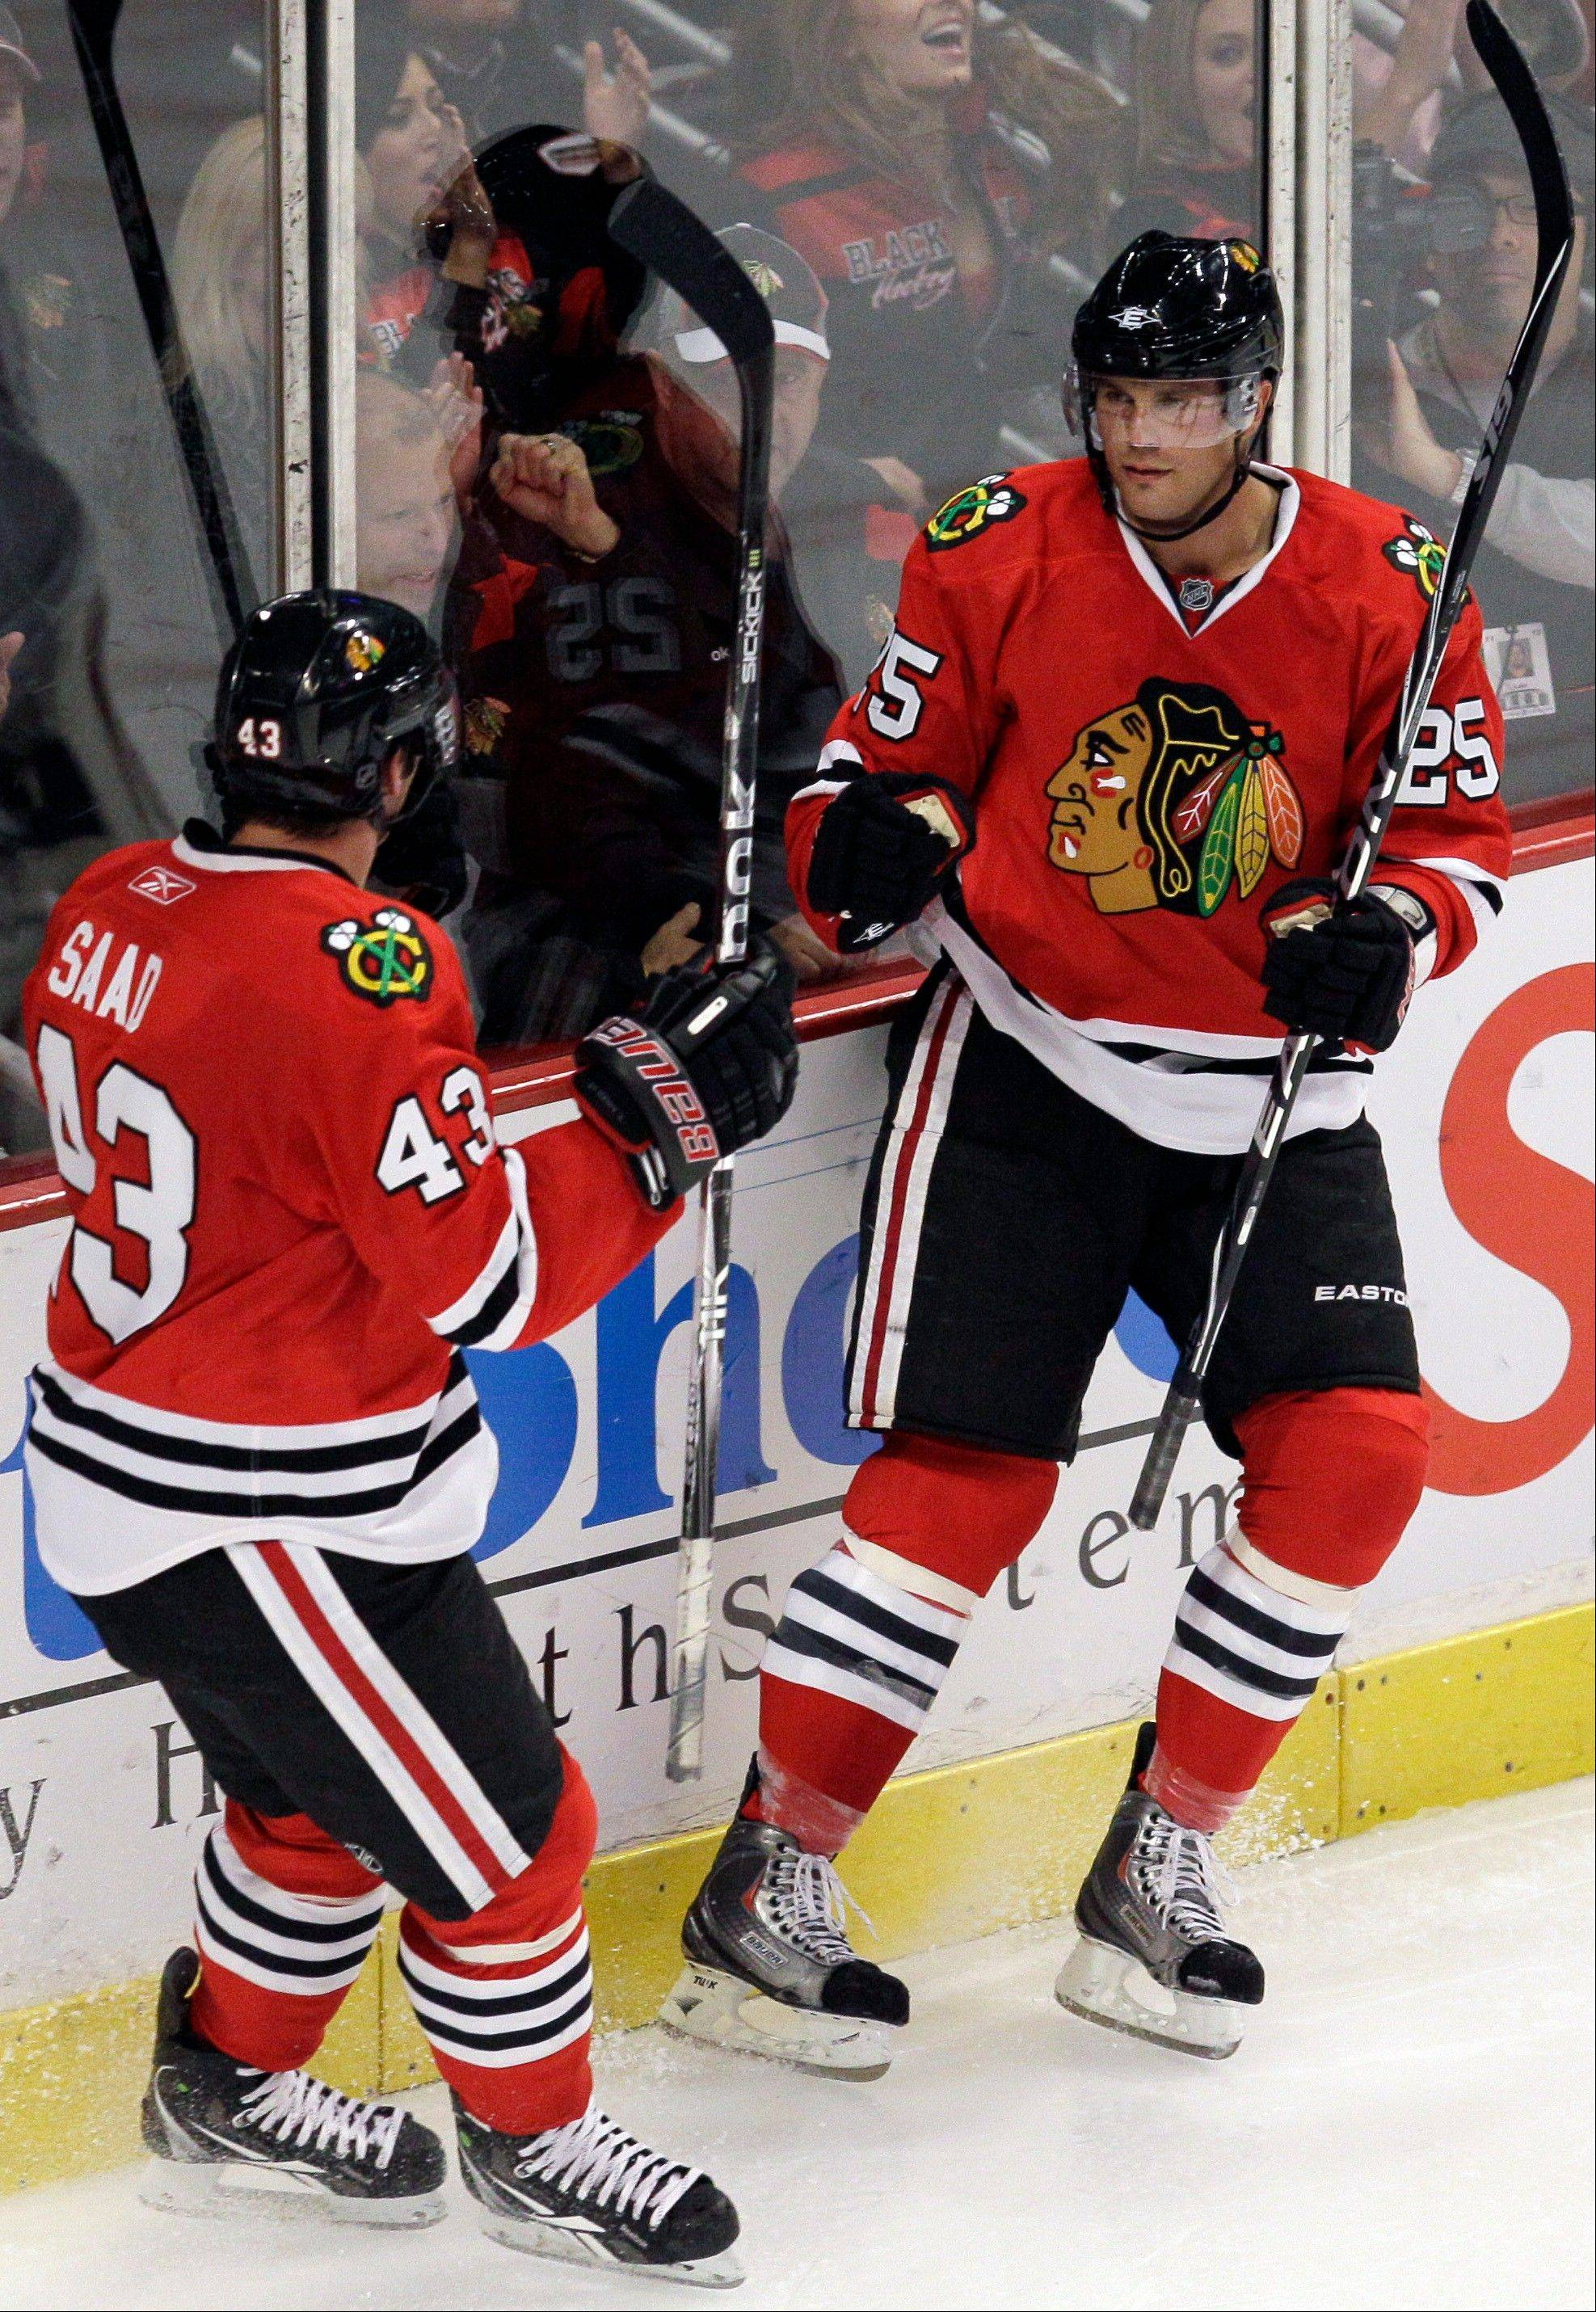 Chicago Blackhawks' Viktor Stalberg (25) celebrates with Brandon Saad (43) after scoring a goal during the third period of an NHL preseason hockey game against the Washington Capitals in Chicago, Friday, Sept. 23, 2011. The Blackhawks won 3-2.